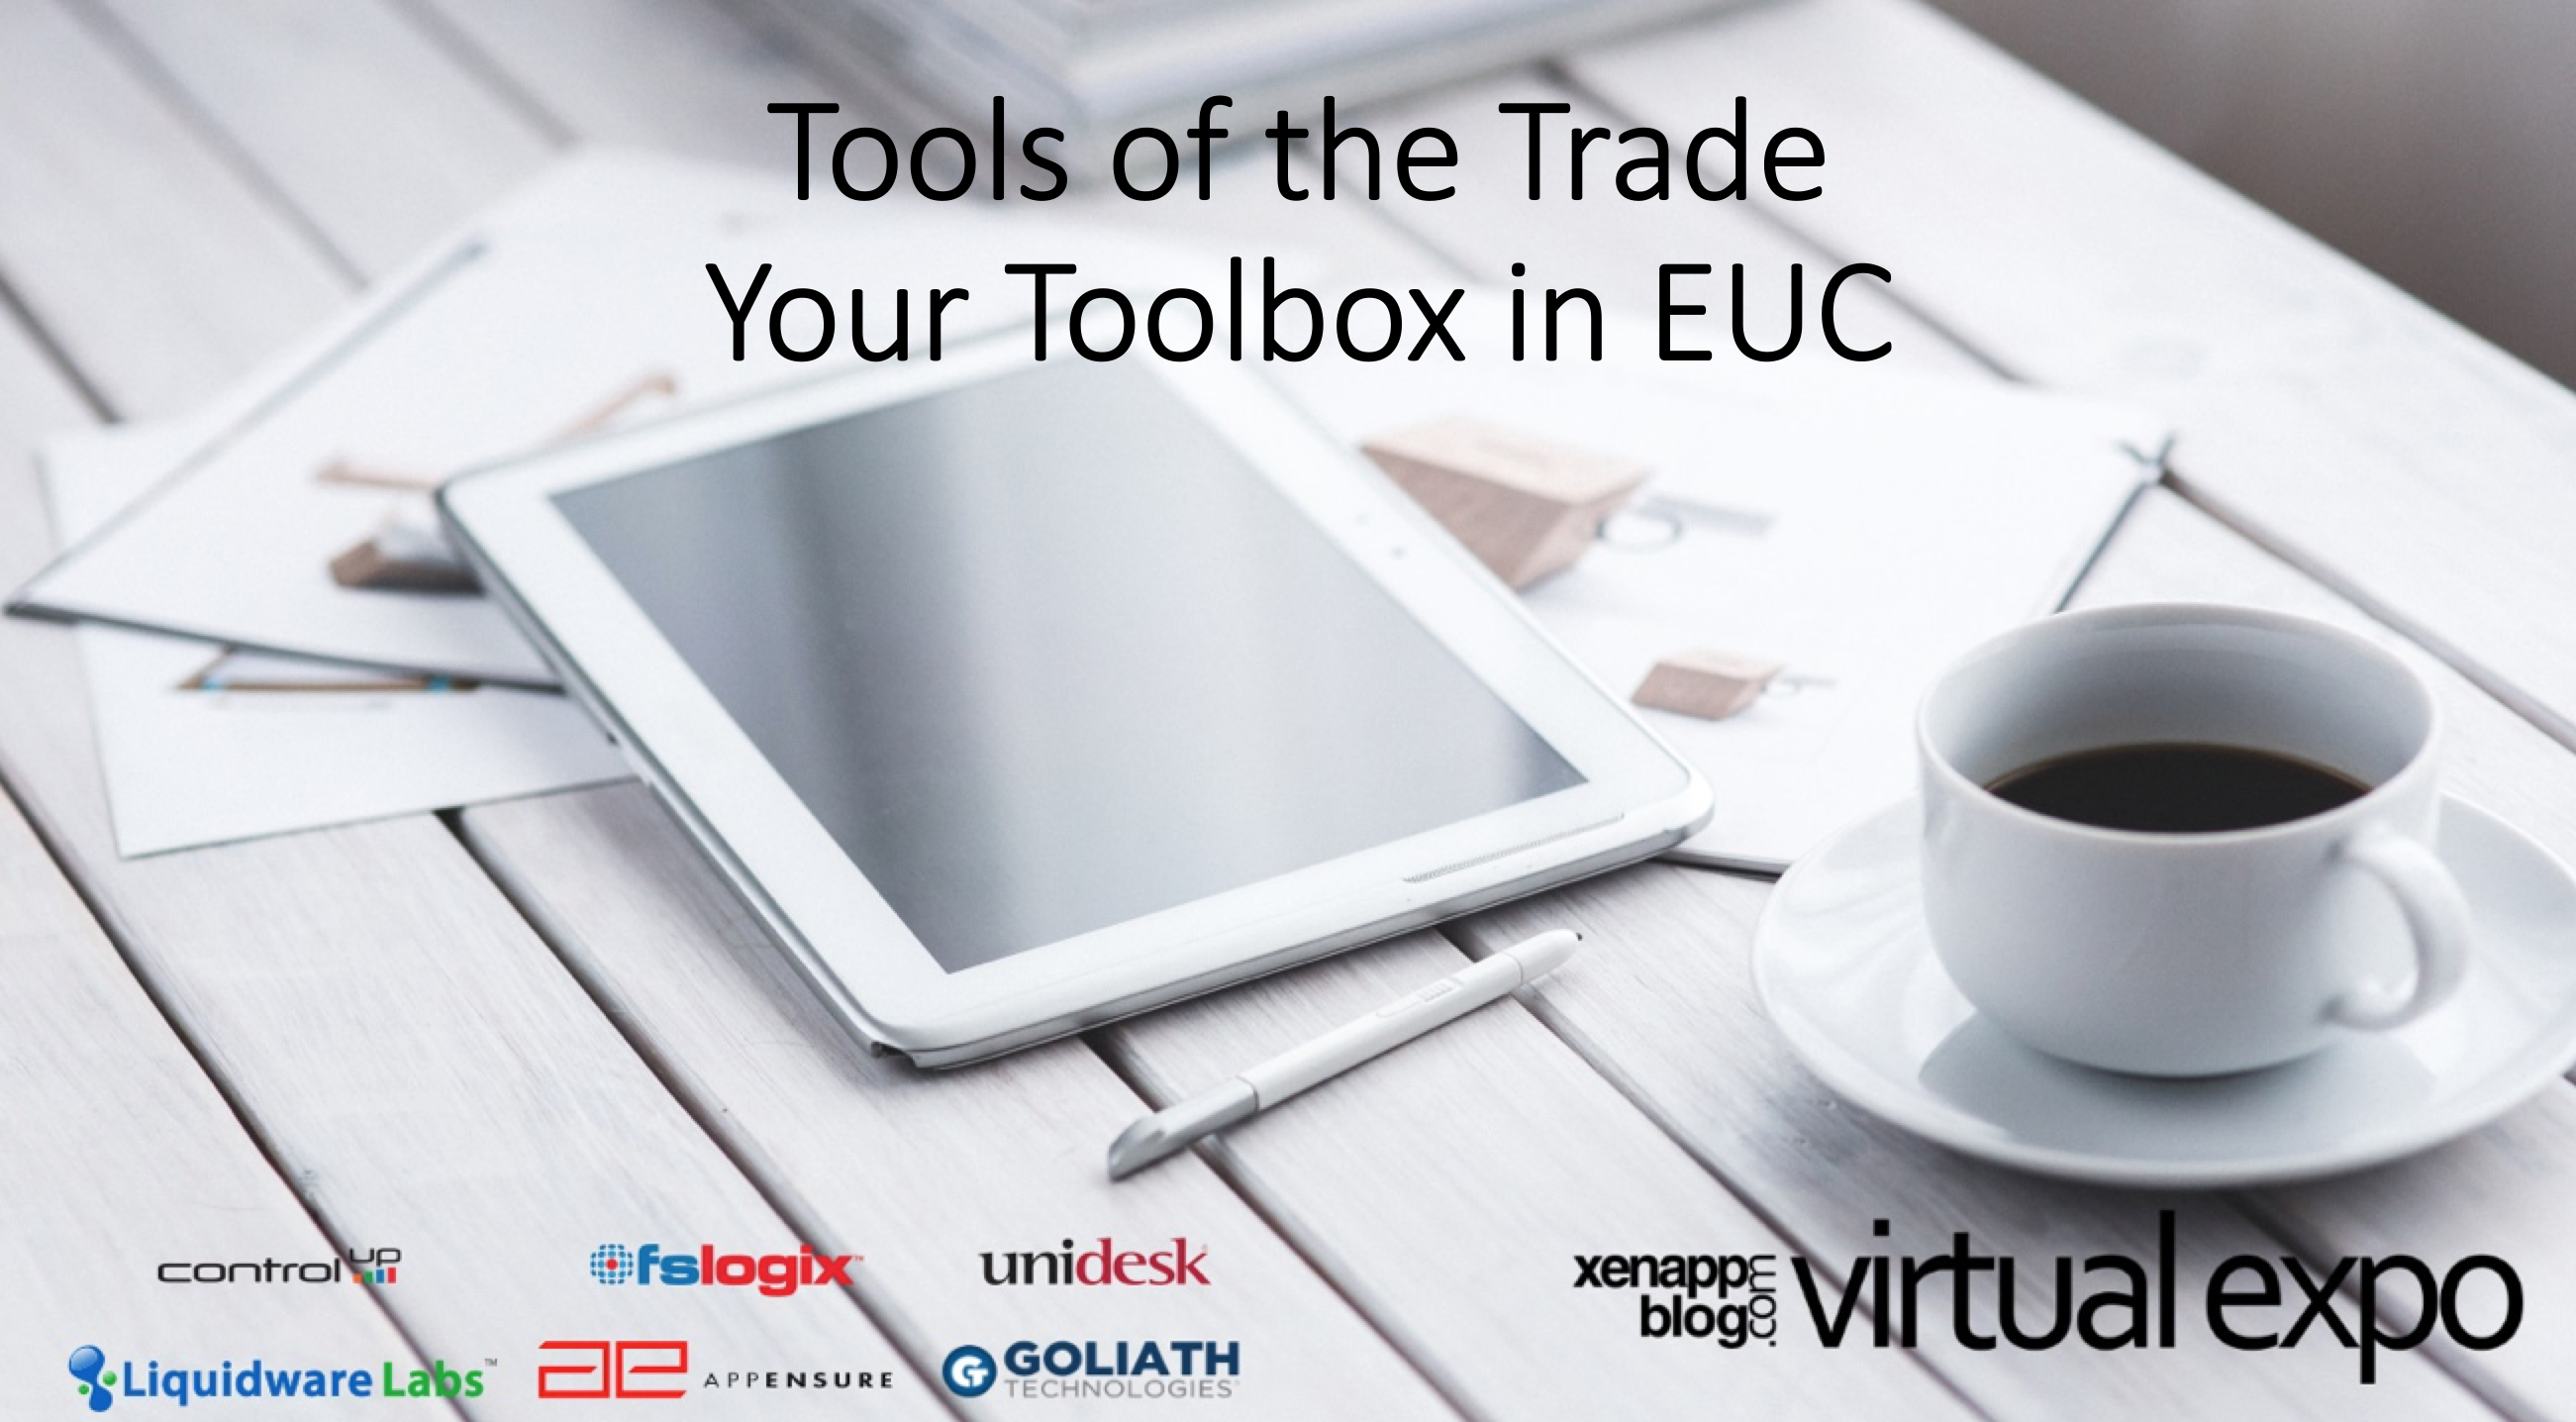 A recap of the tools in EUC as seen at #VirtualExpo